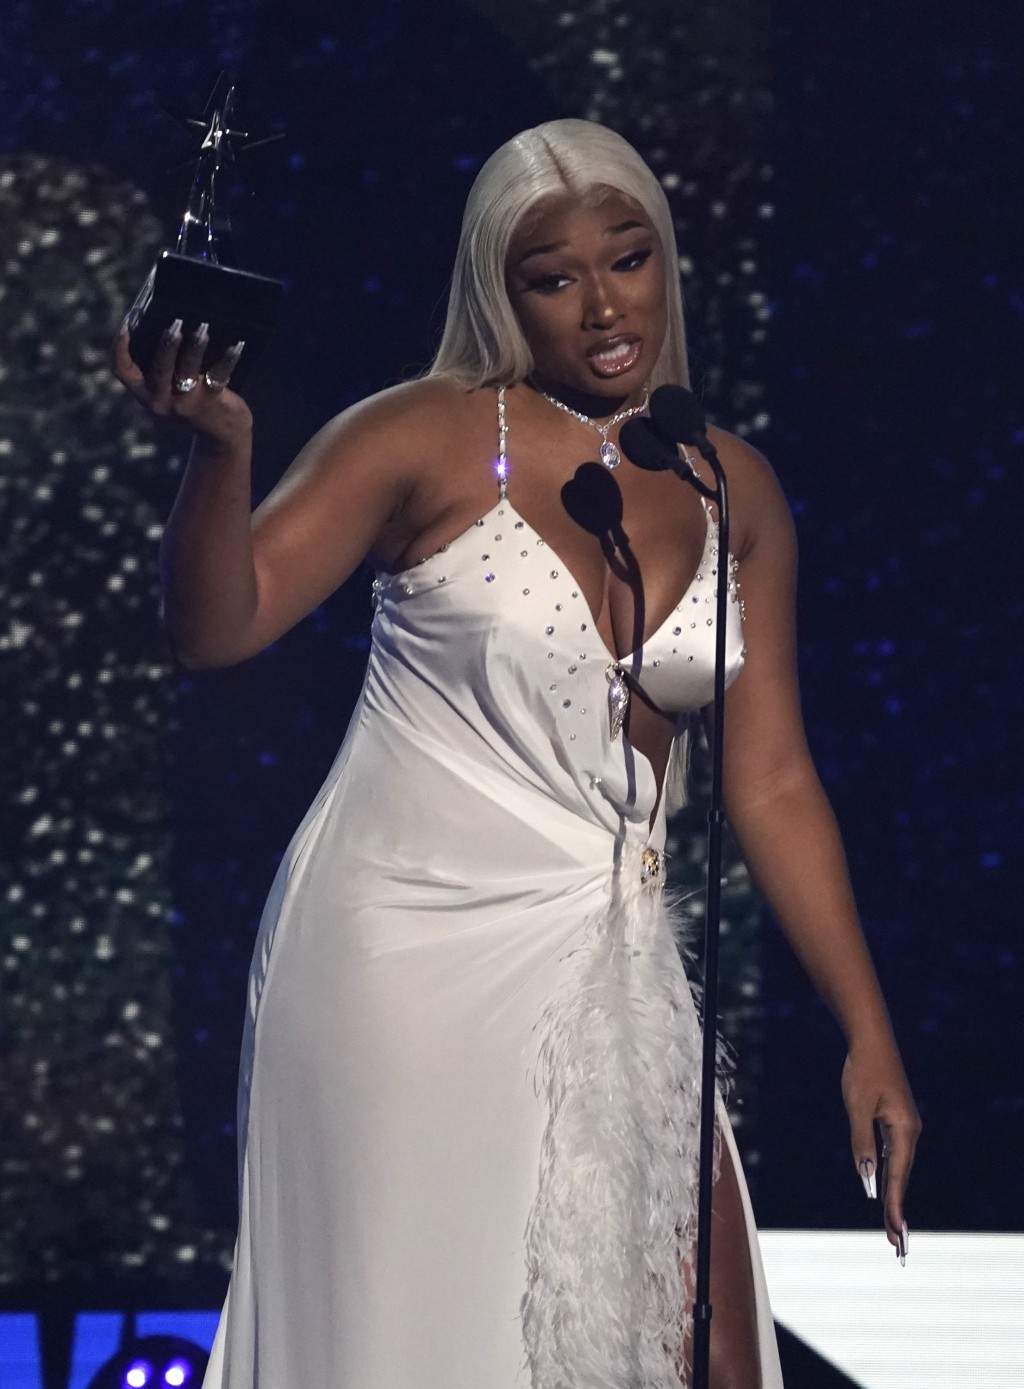 """Megan Thee Stallion accepts the award for video of the year for """"WAP"""" at the BET Awards on Sunday, June 27, 2021, at the Microsoft Theater in Los Ange..."""